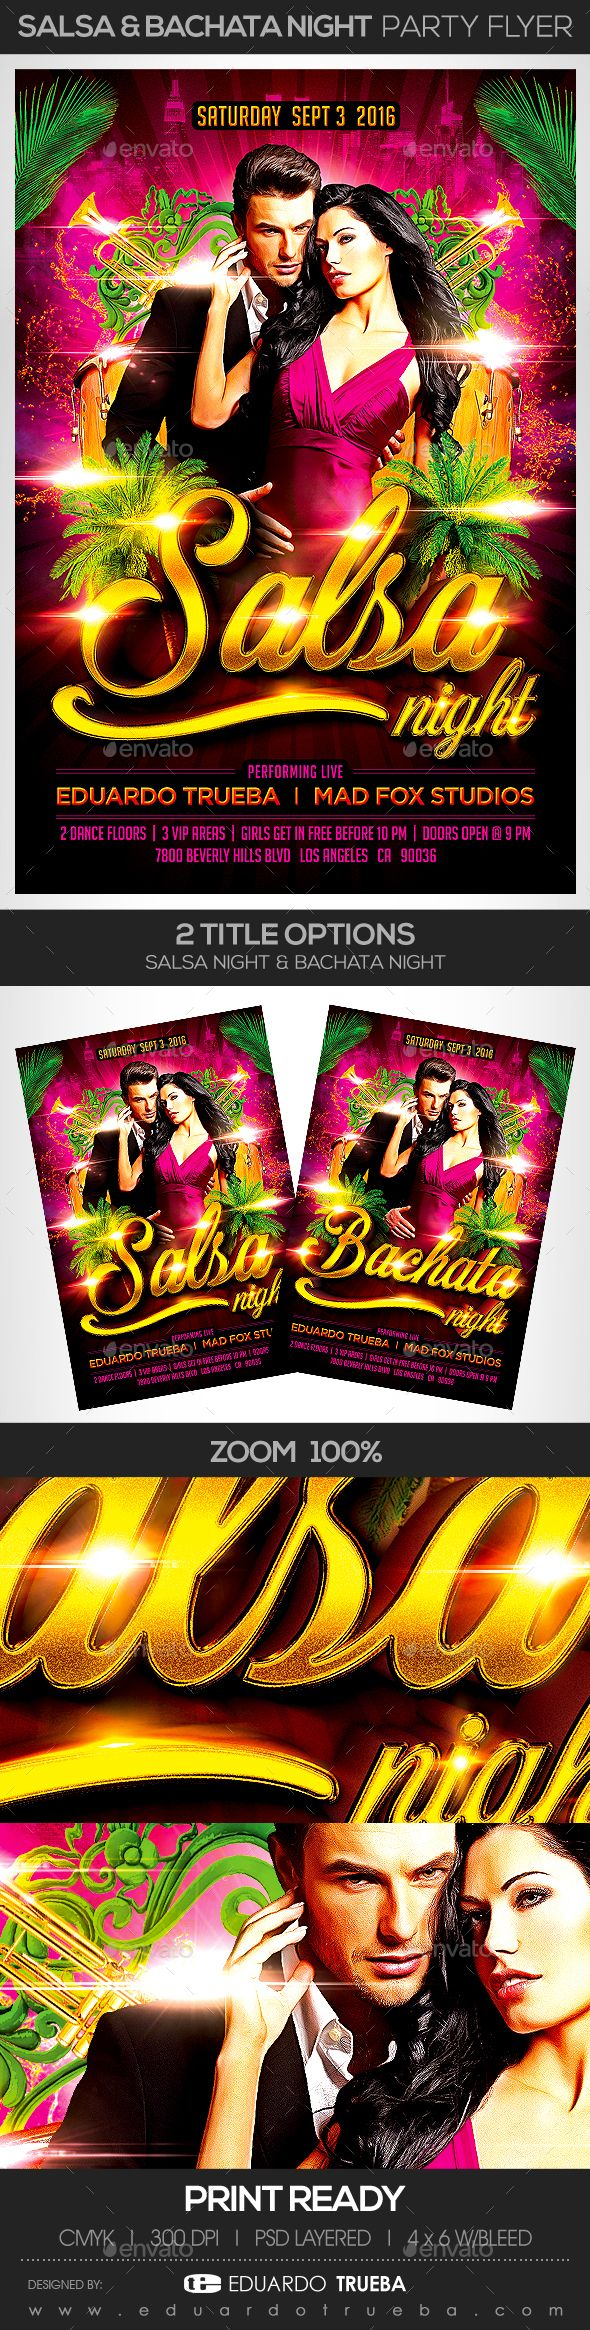 Salsa & Bachata Night Party Flyer — Photoshop PSD #bachateame #festival • Available here → https://graphicriver.net/item/salsa-bachata-night-party-flyer/17765056?ref=pxcr